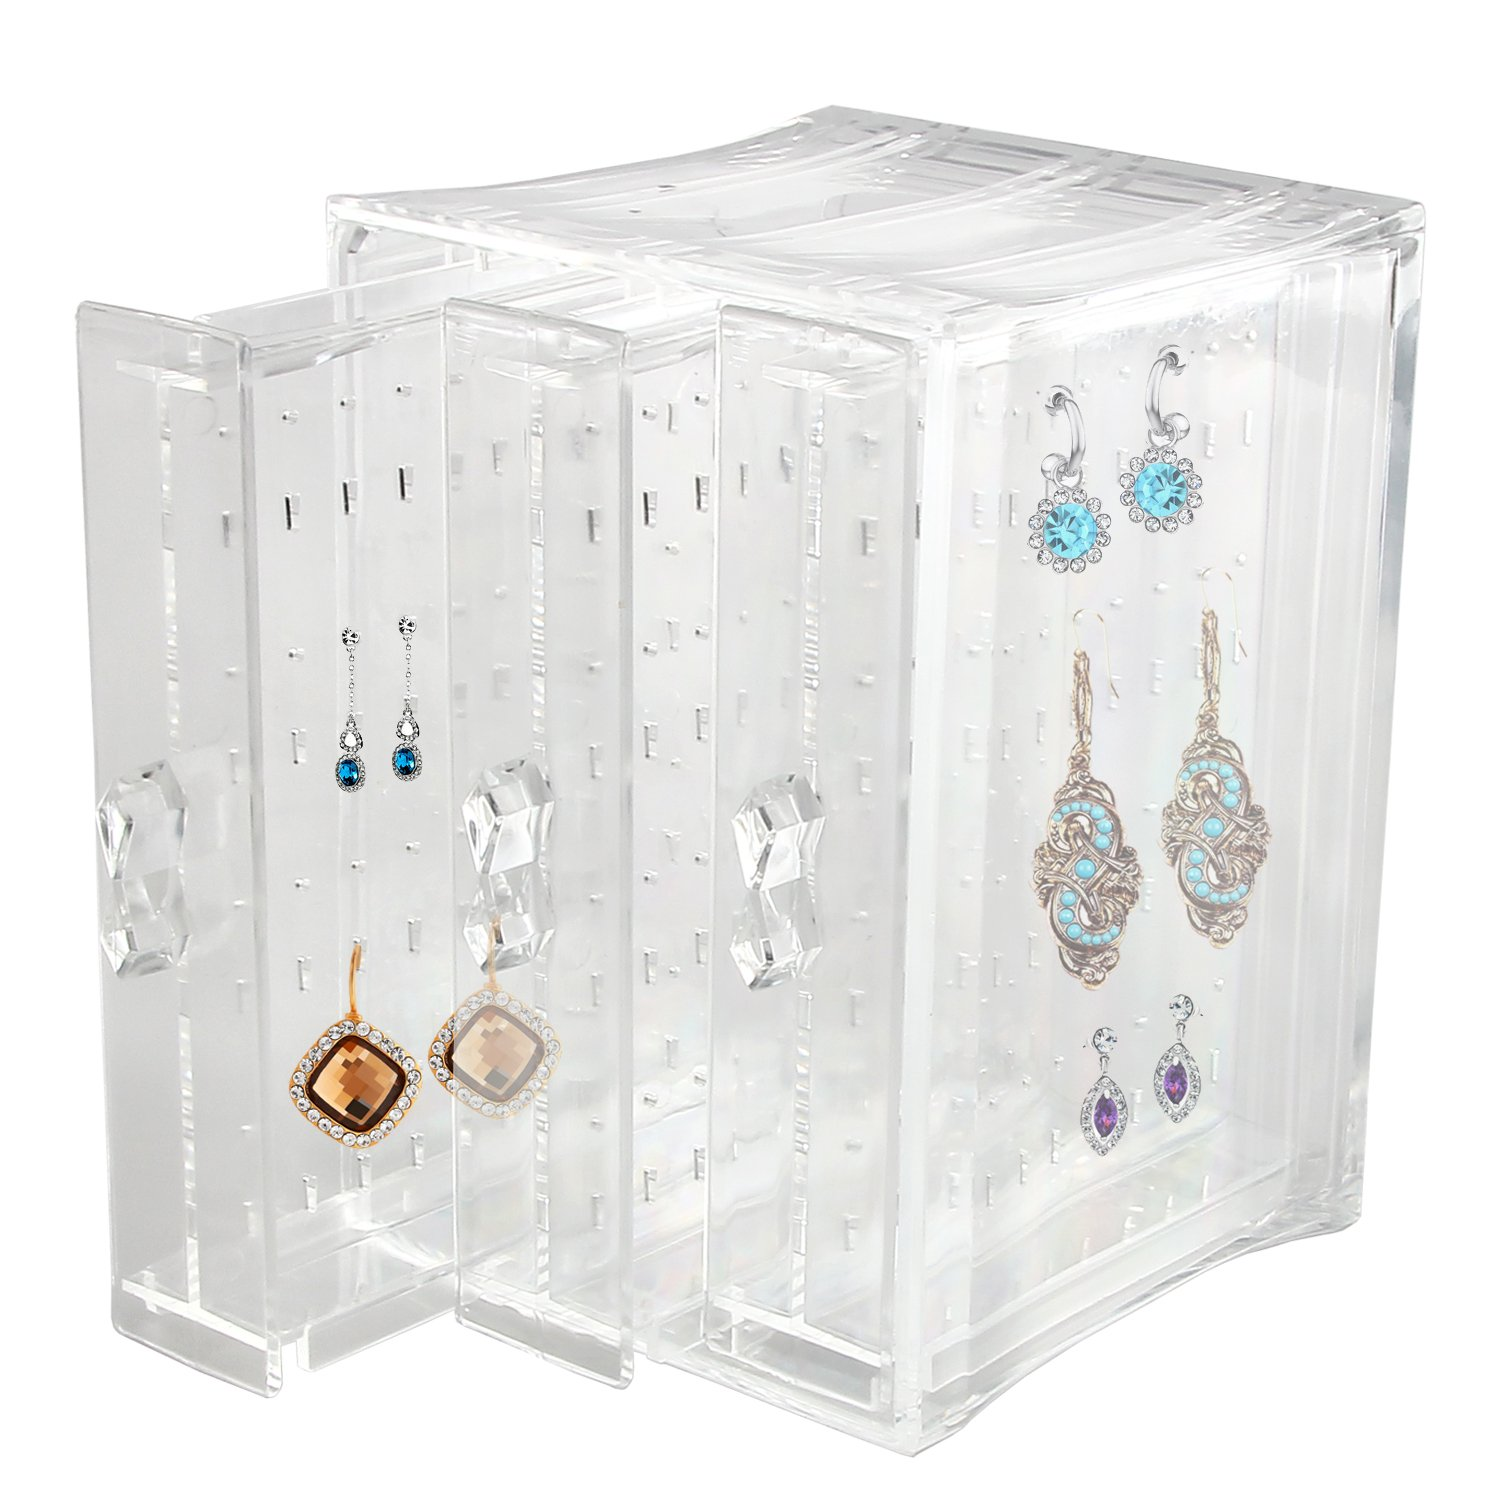 Discoball Acrylic Earrings Holder Jewellery Organiser 57040